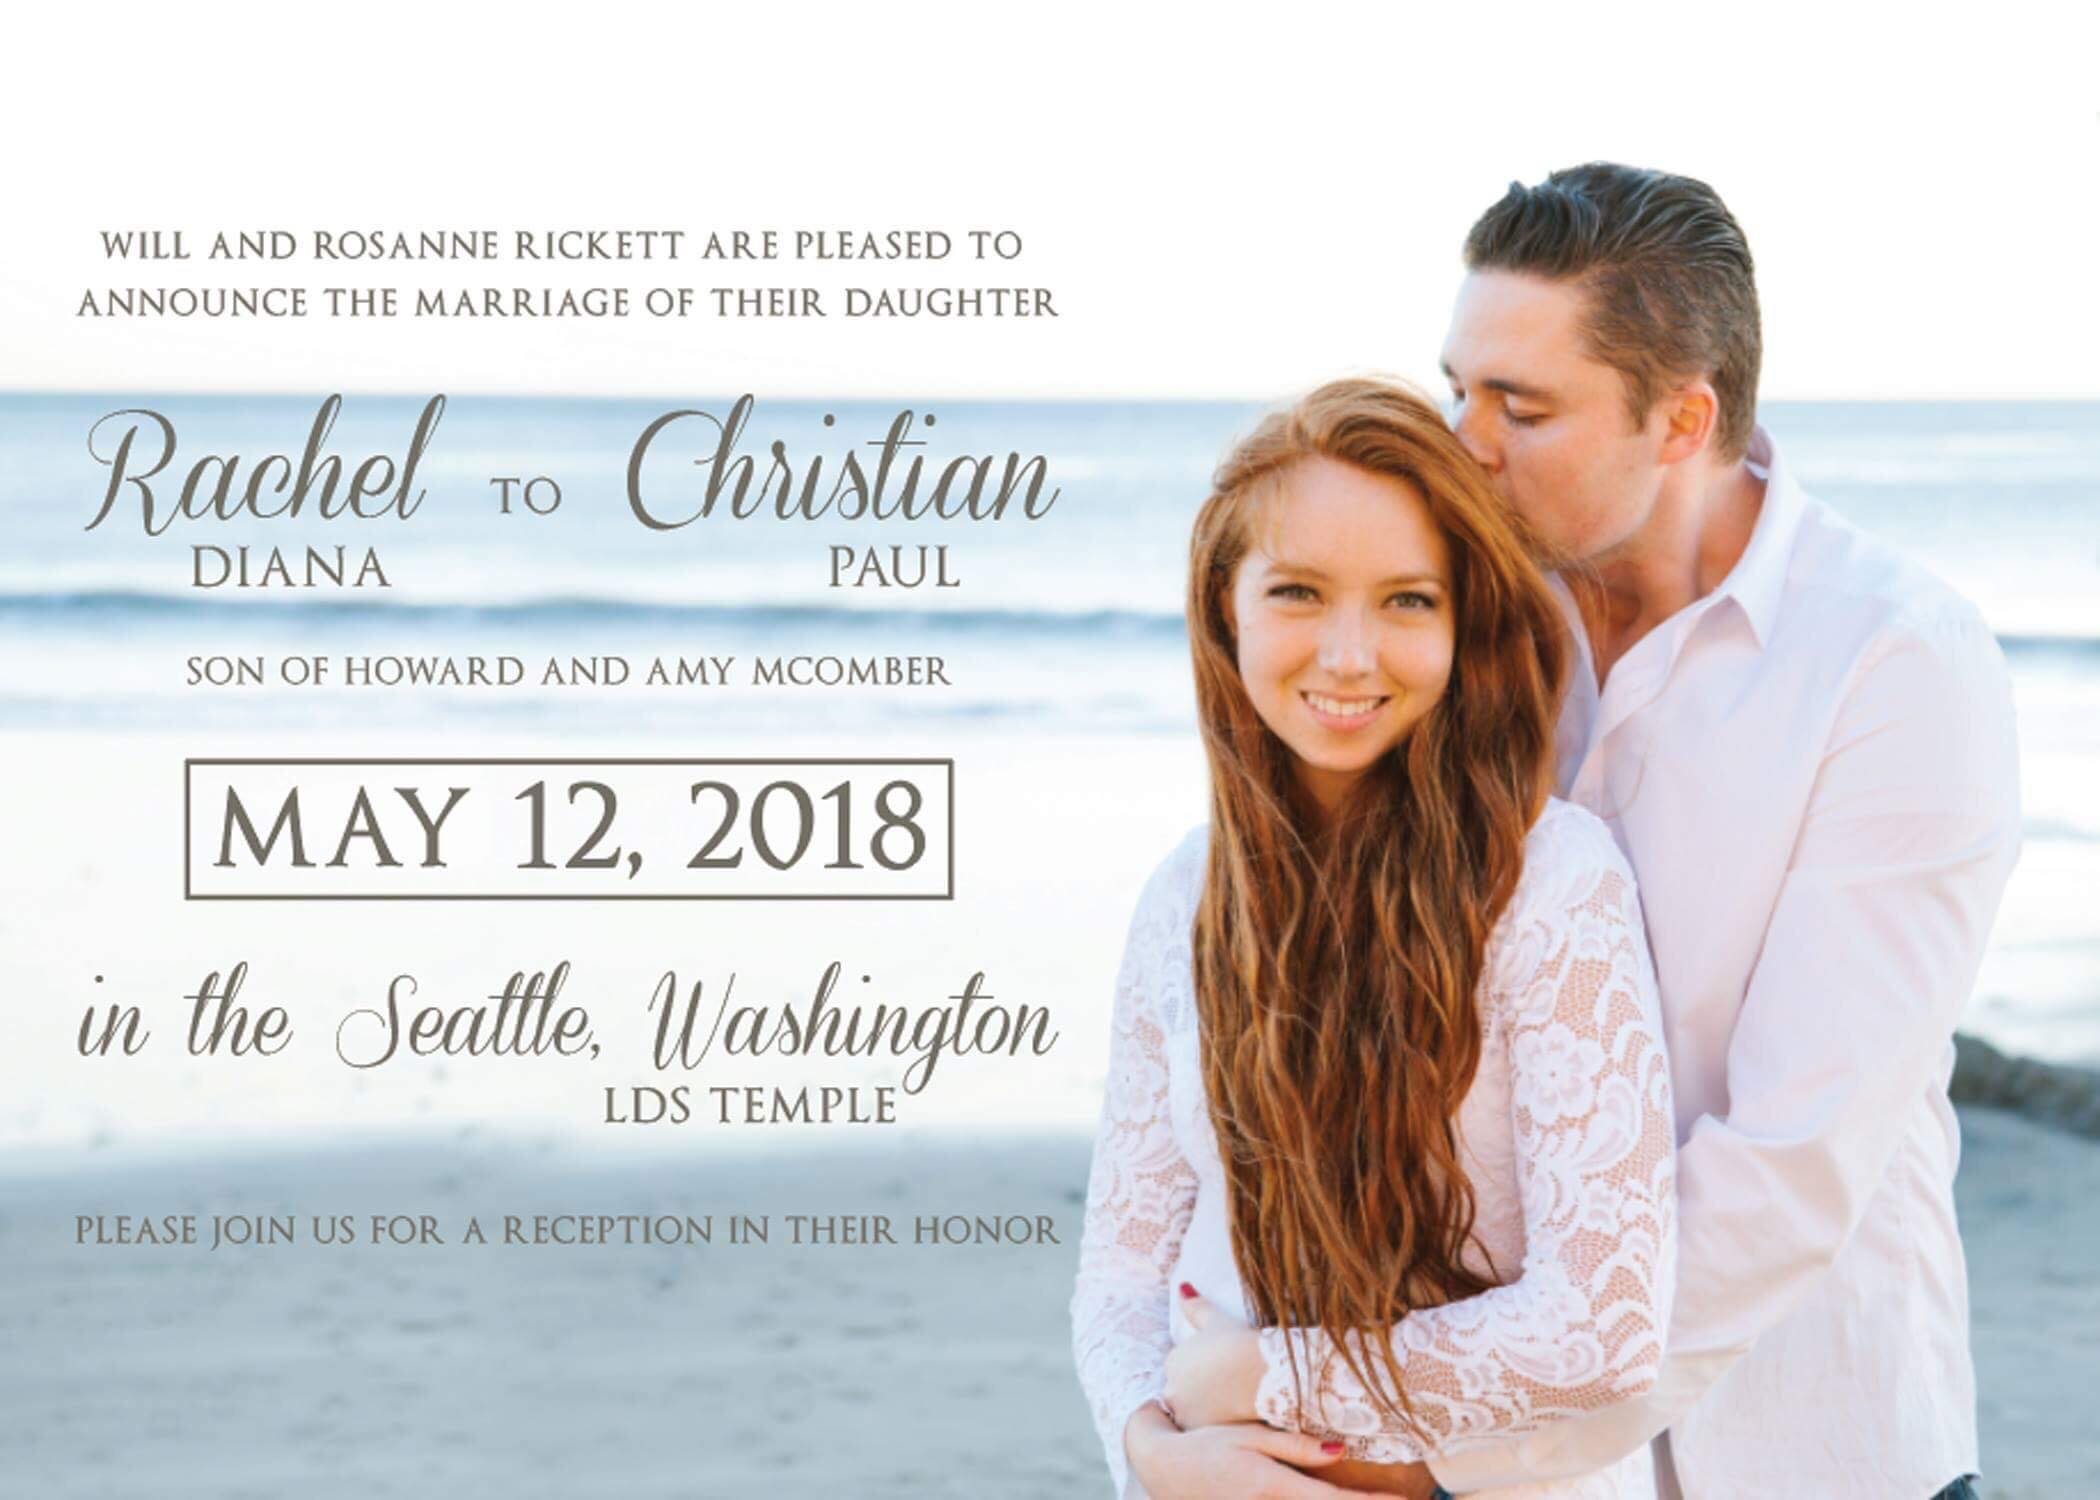 wedding announcements sarah wakefield photodesign